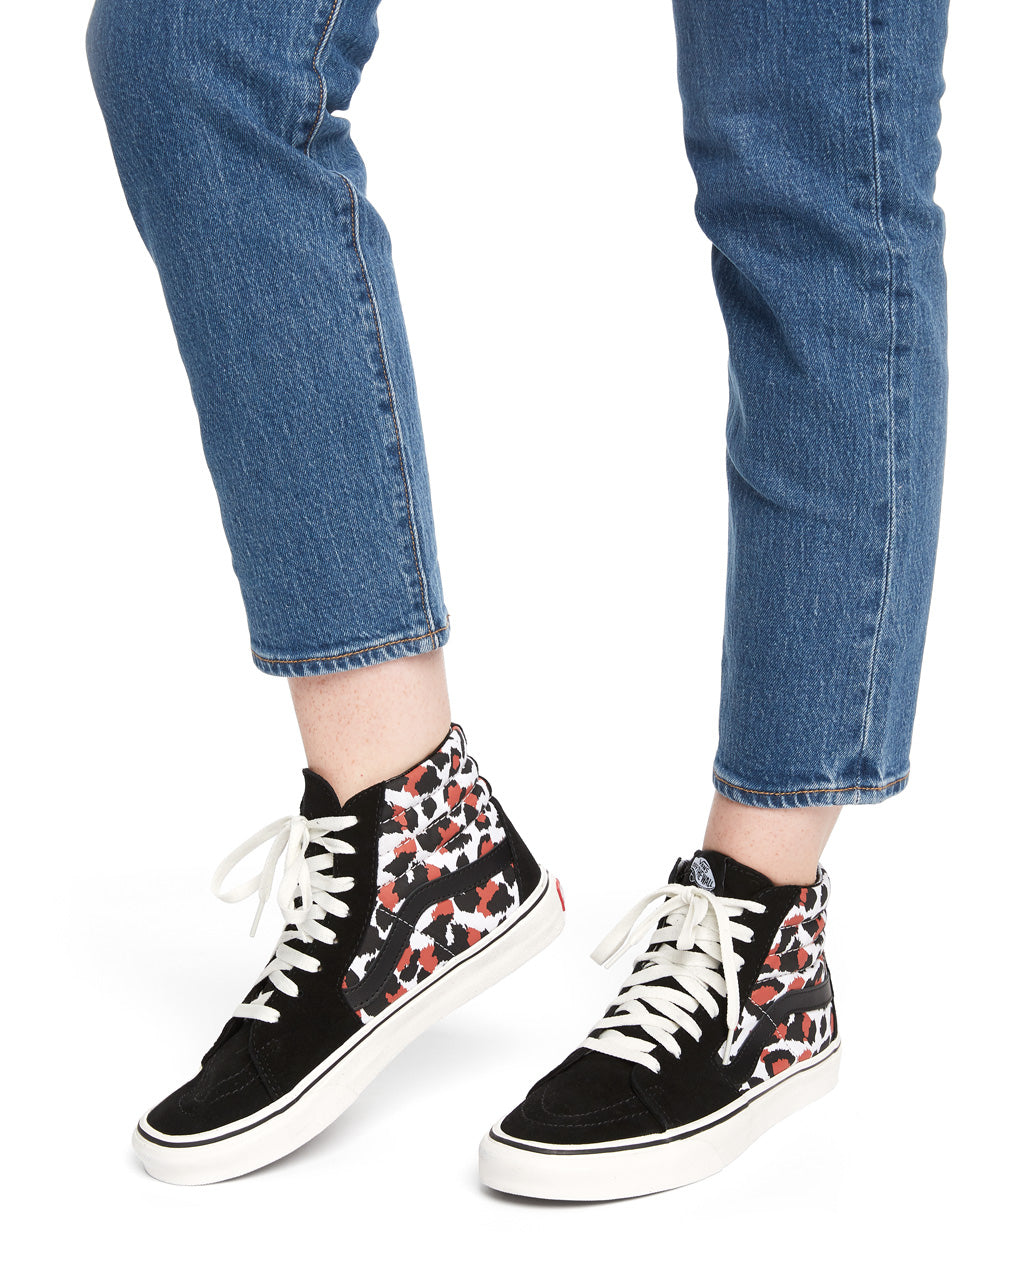 new styles ever popular newest collection Sk8-Hi - Leopard by vans - shoes - ban.do